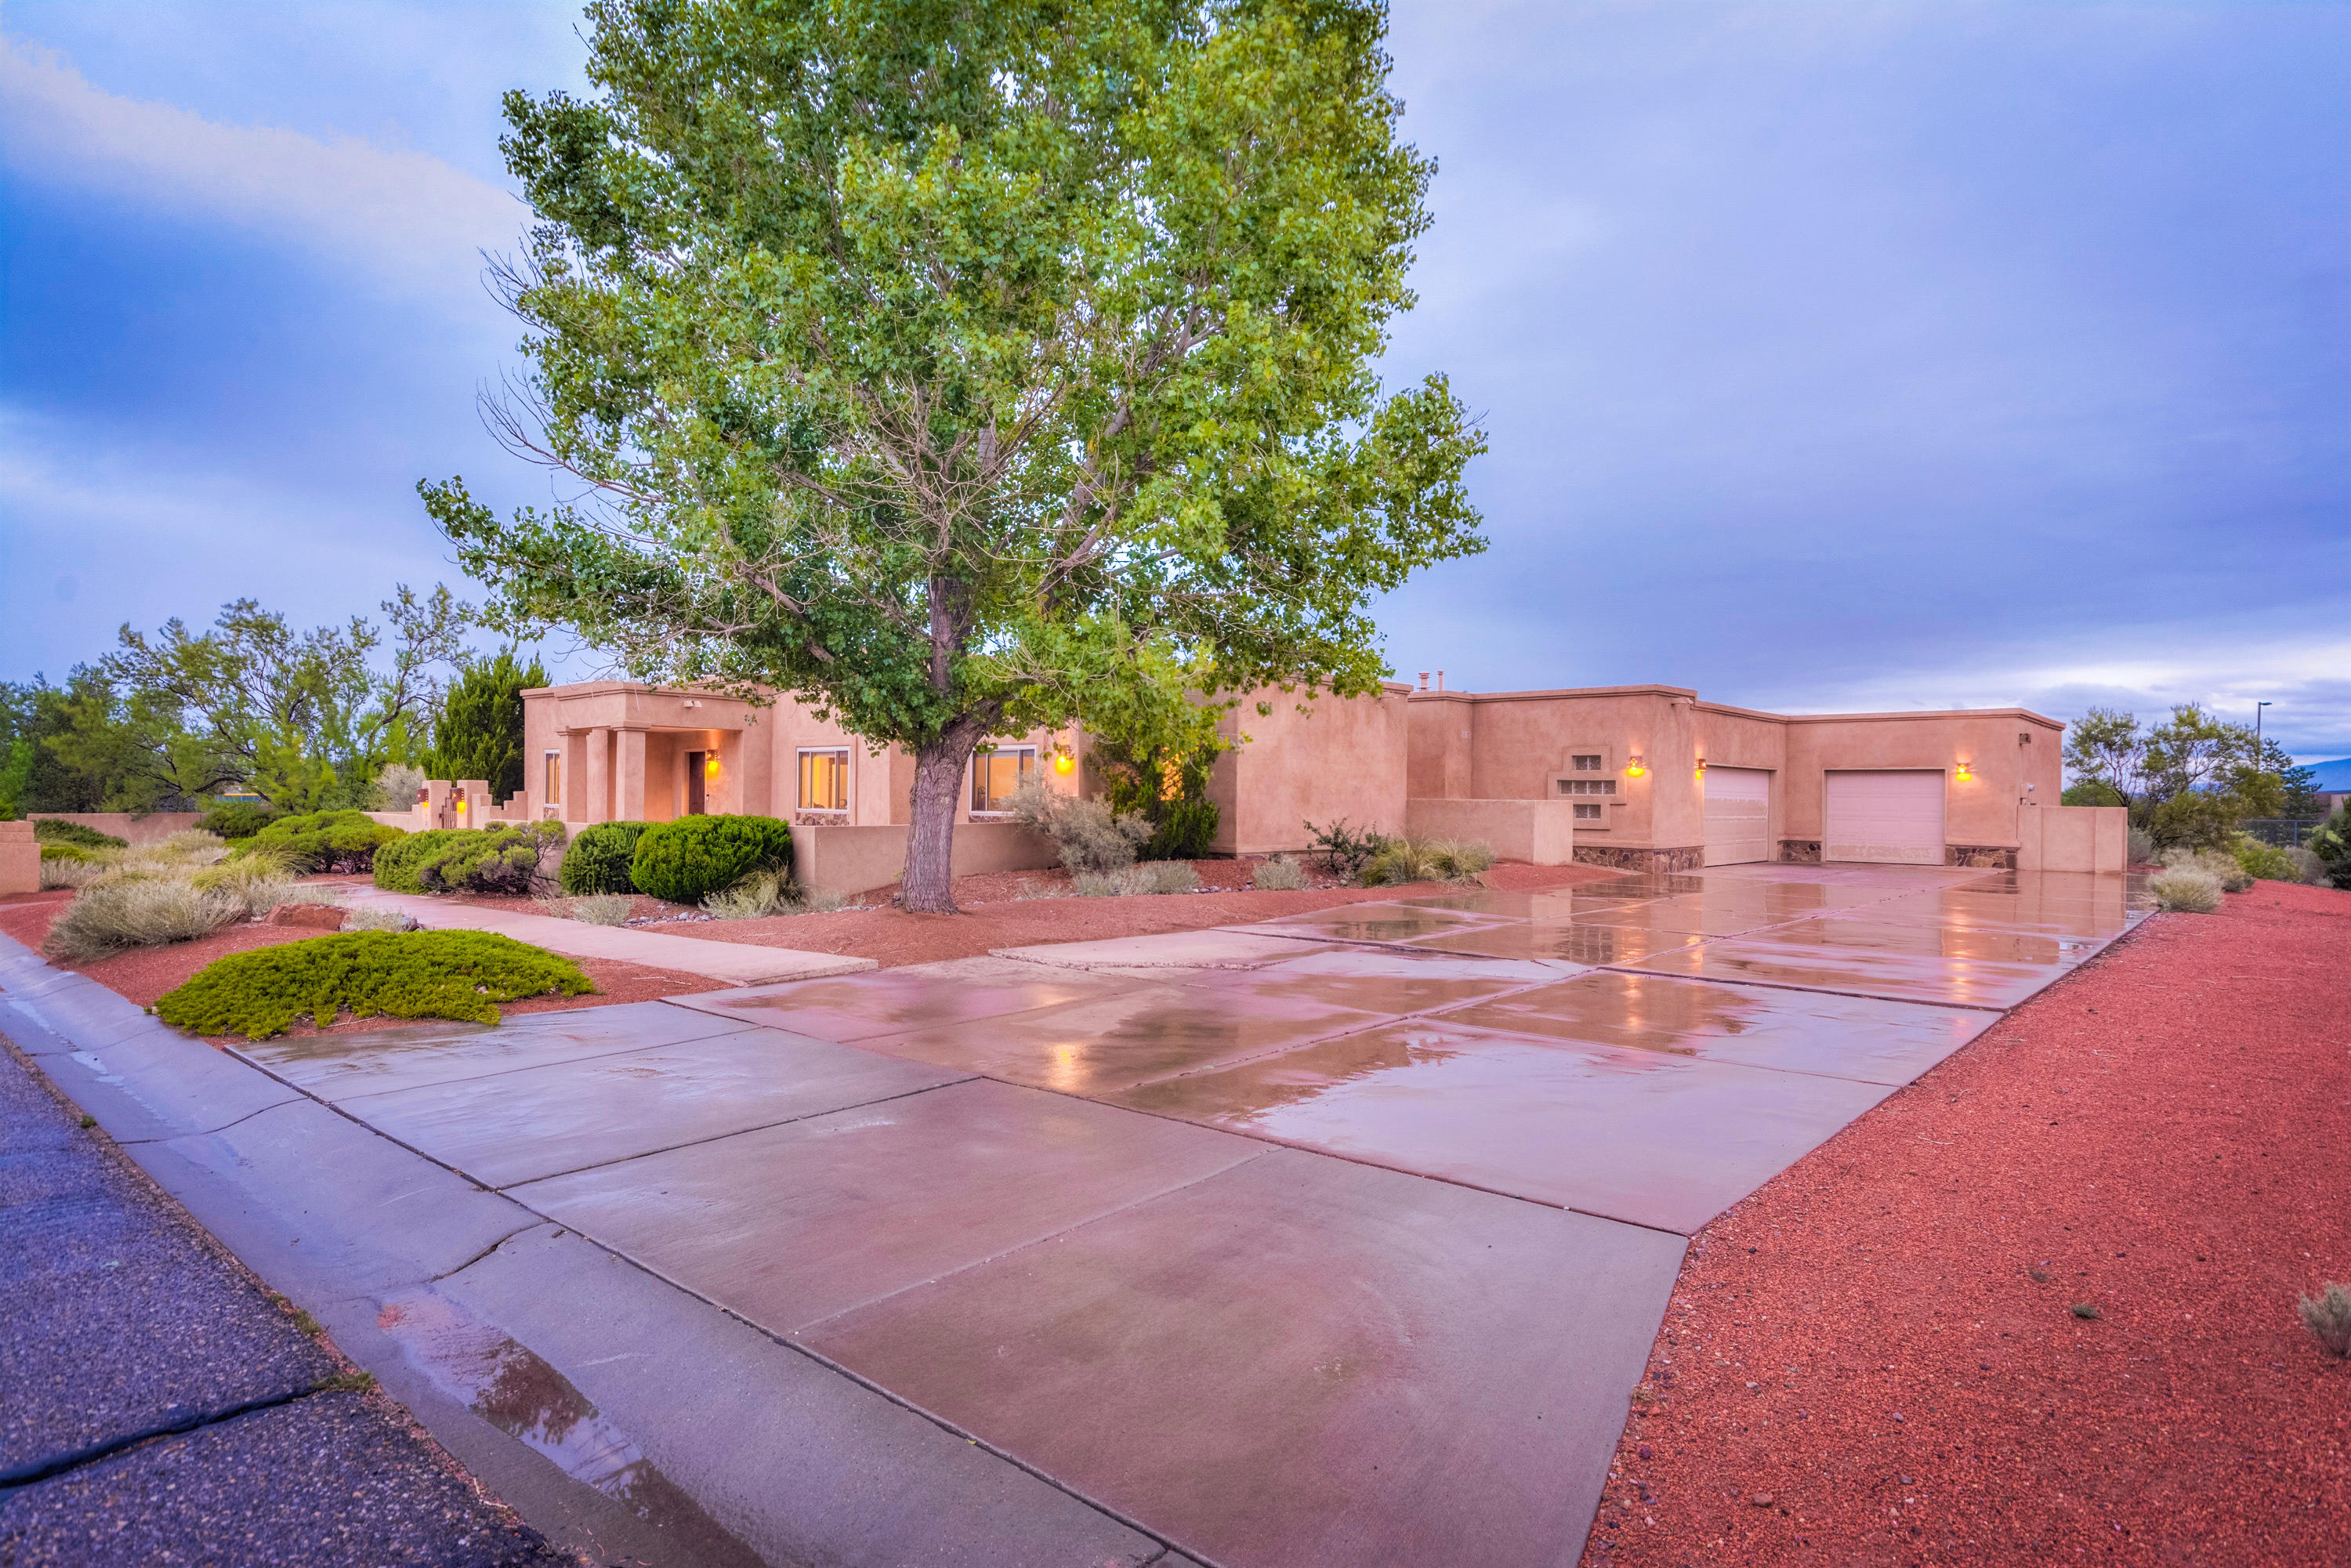 This great custom home has so much space to spread out and enjoy your own private oasis!  Located on close to an acre, there is room to add more to the backyard if you desire.  4 beds and 3 full baths plus two living spaces or two dining spaces.  The front room could also be enclosed as an office if desired.  This house has great storage with 2 pantries, and a huge 3 car+ garage with workshop and more storage.  The home has central vac plus garage vacuum system.  The property features native vegetation with no homes behind or to the North of the property.  The covered patio is amazing for entertaining.  Also includes a basketball court.  This property has so much to offer and in a great neighborhood.  Enjoy private land with public utilities and sewer, but still close to everything!